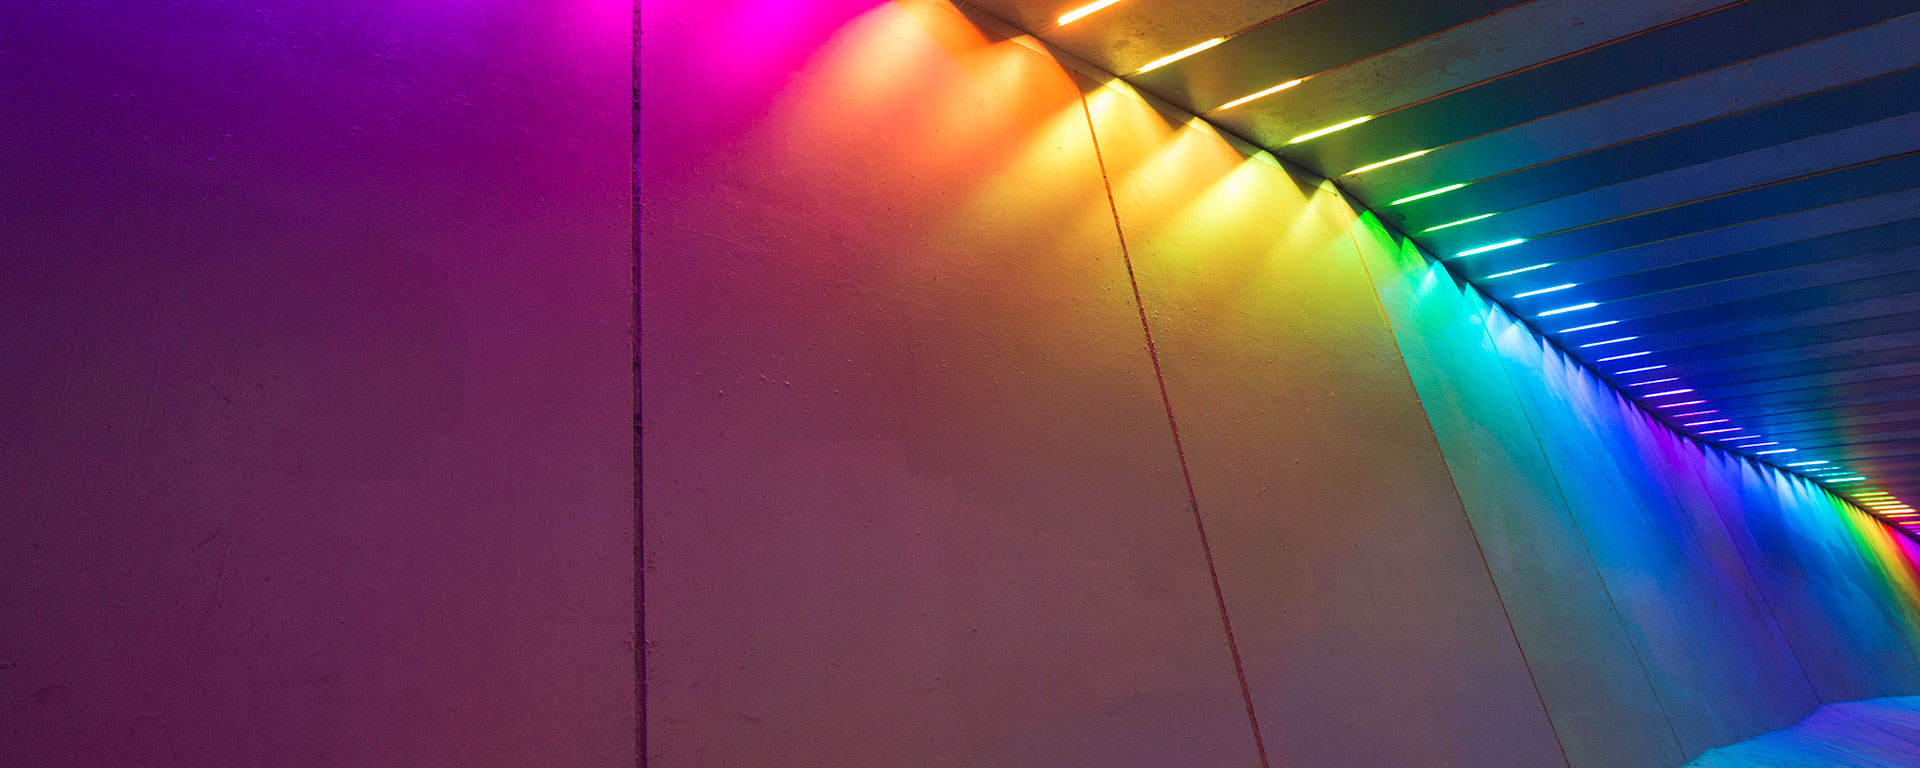 Bring life to any DMX installation by looping a colour change sequence. Compact yet highly capable, Cool DMX will control up to170 RGB, 180 RGBW or 512 single channel luminaires.